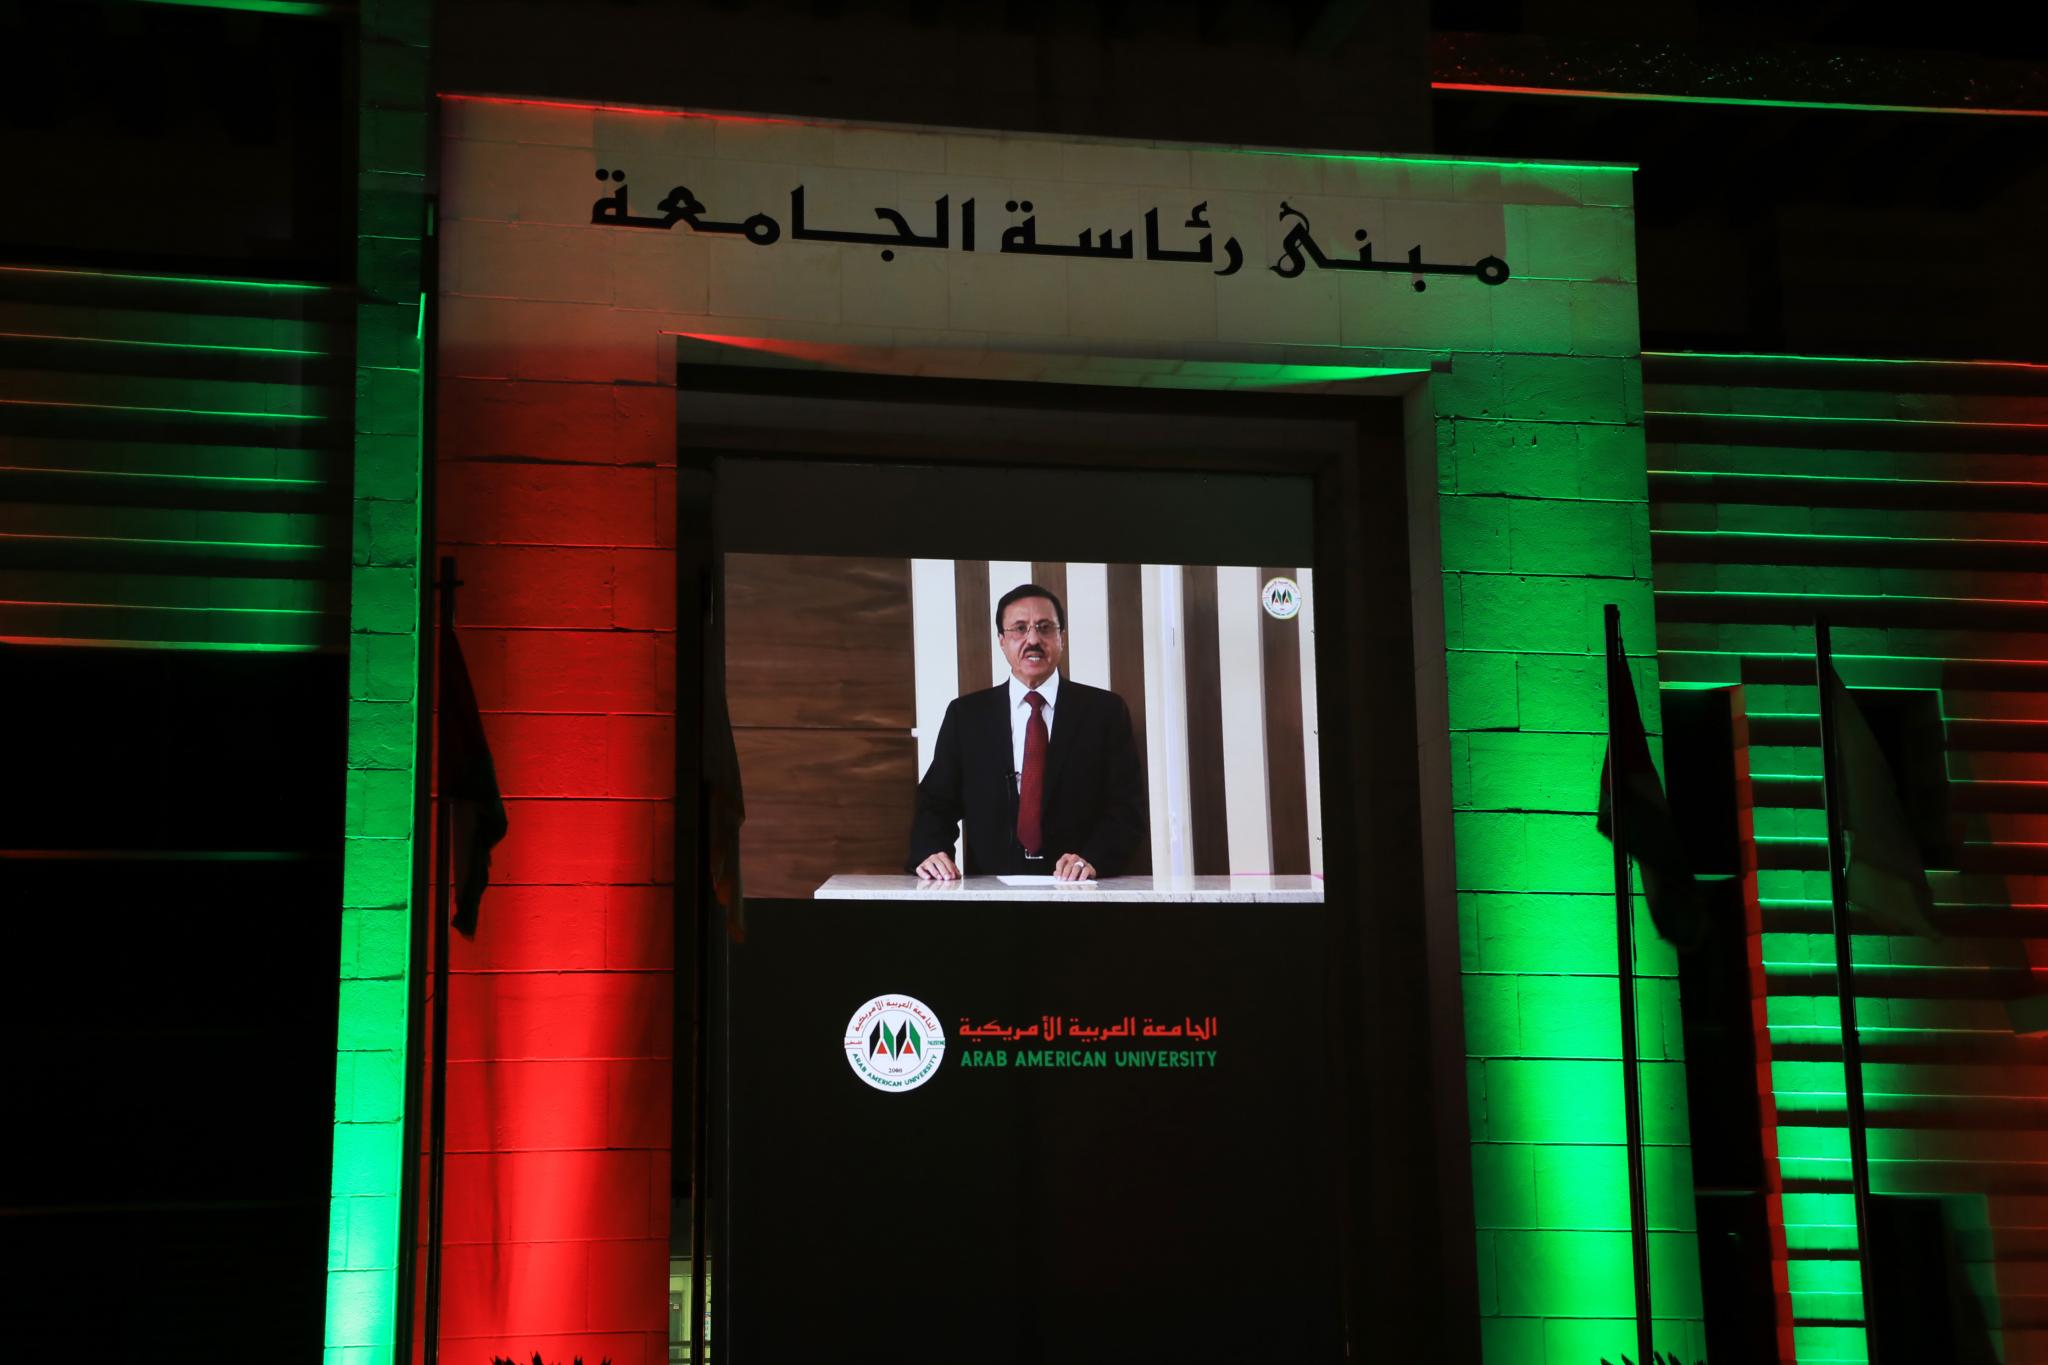 Dr. Yousef Asfour- the Head of the Board of Directors' speech in the 20th anniversary ceremony